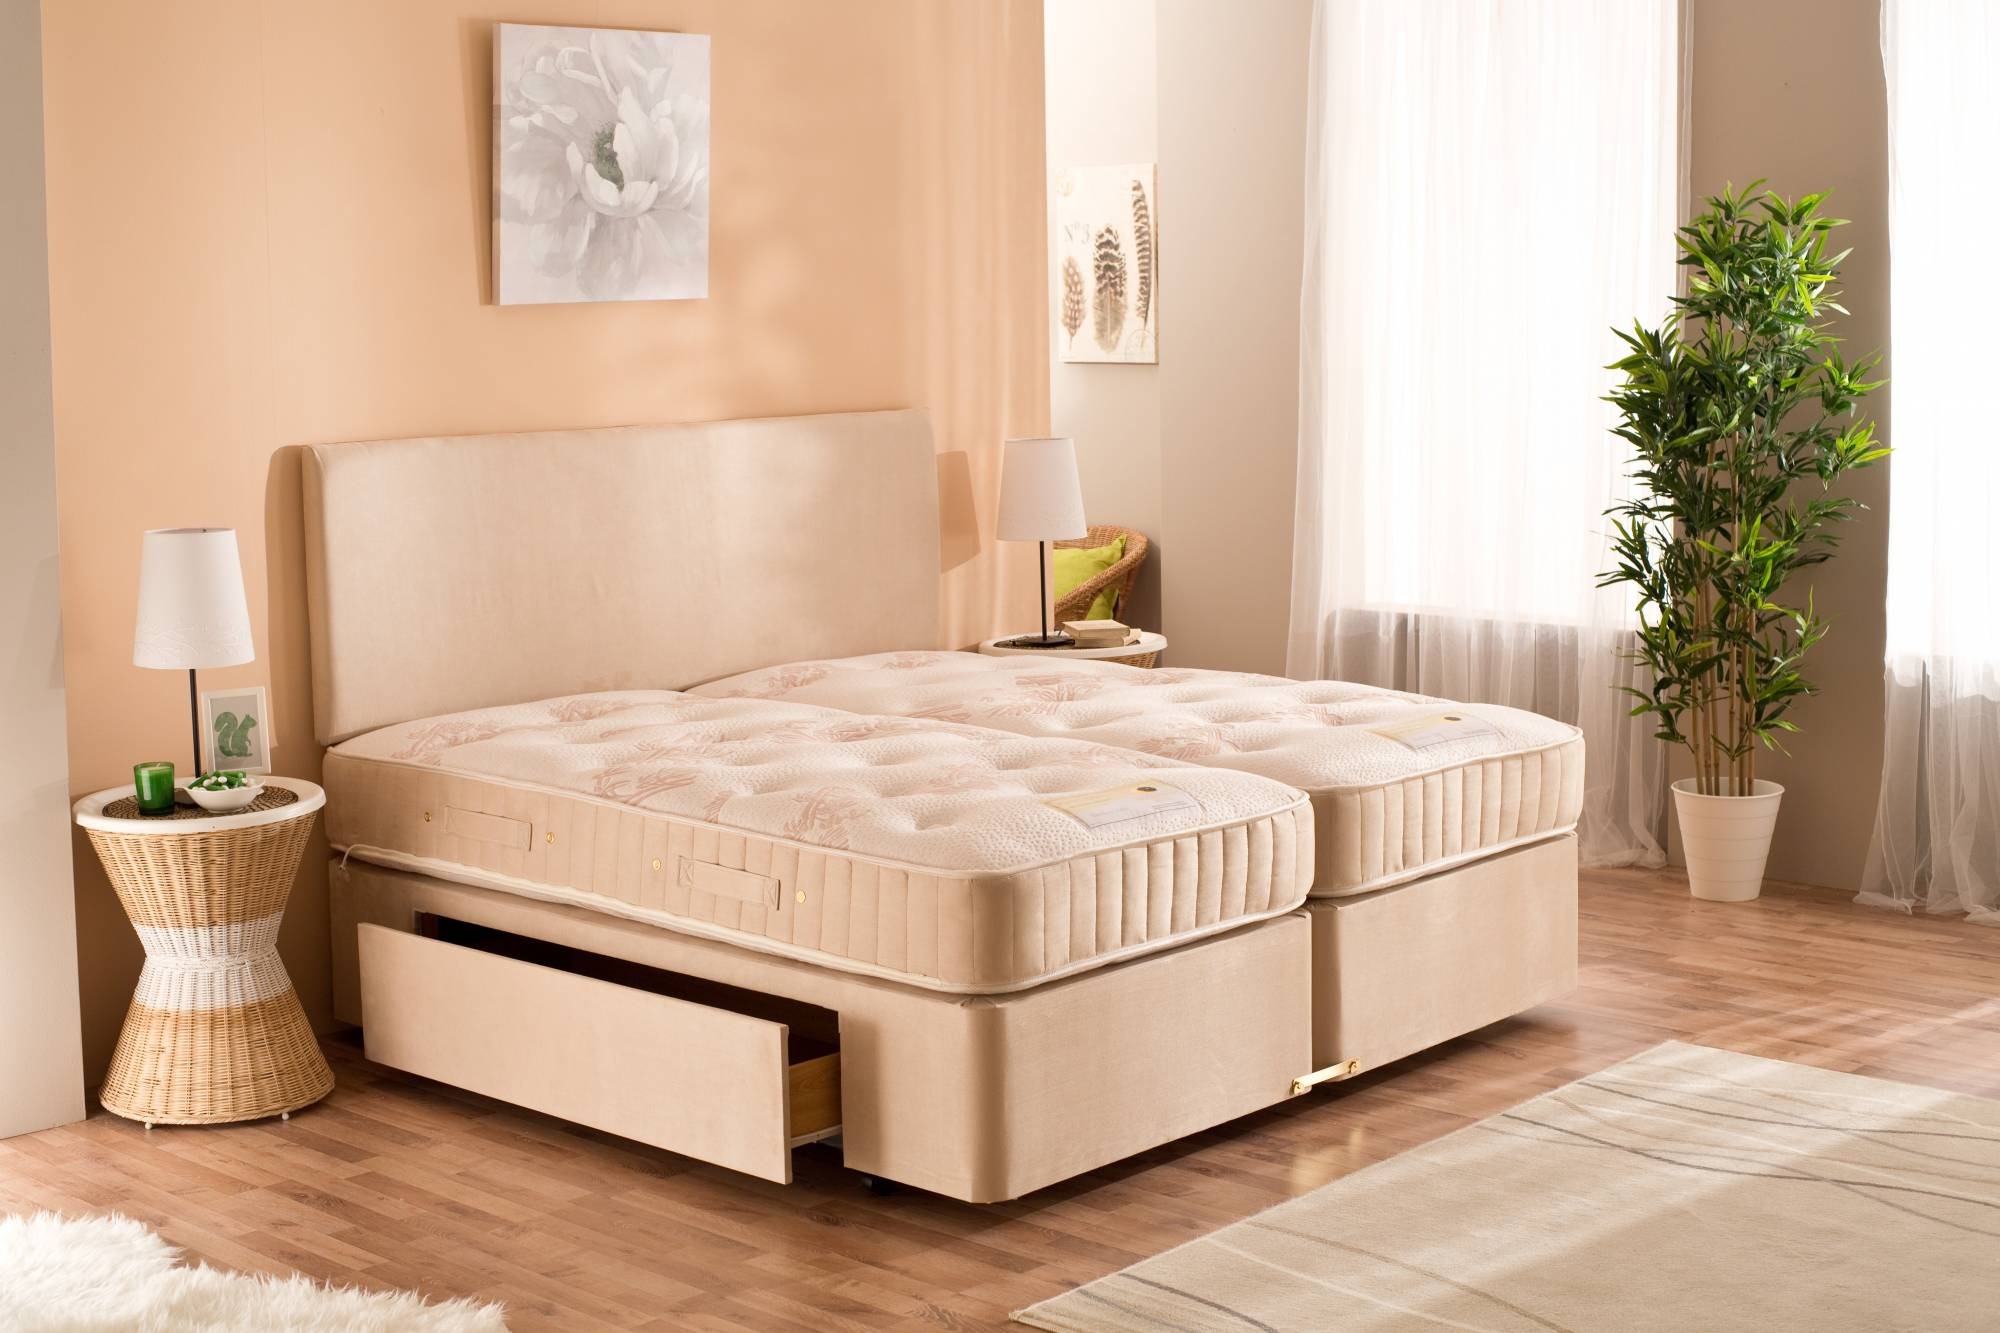 Moonraker Beds Bamboo